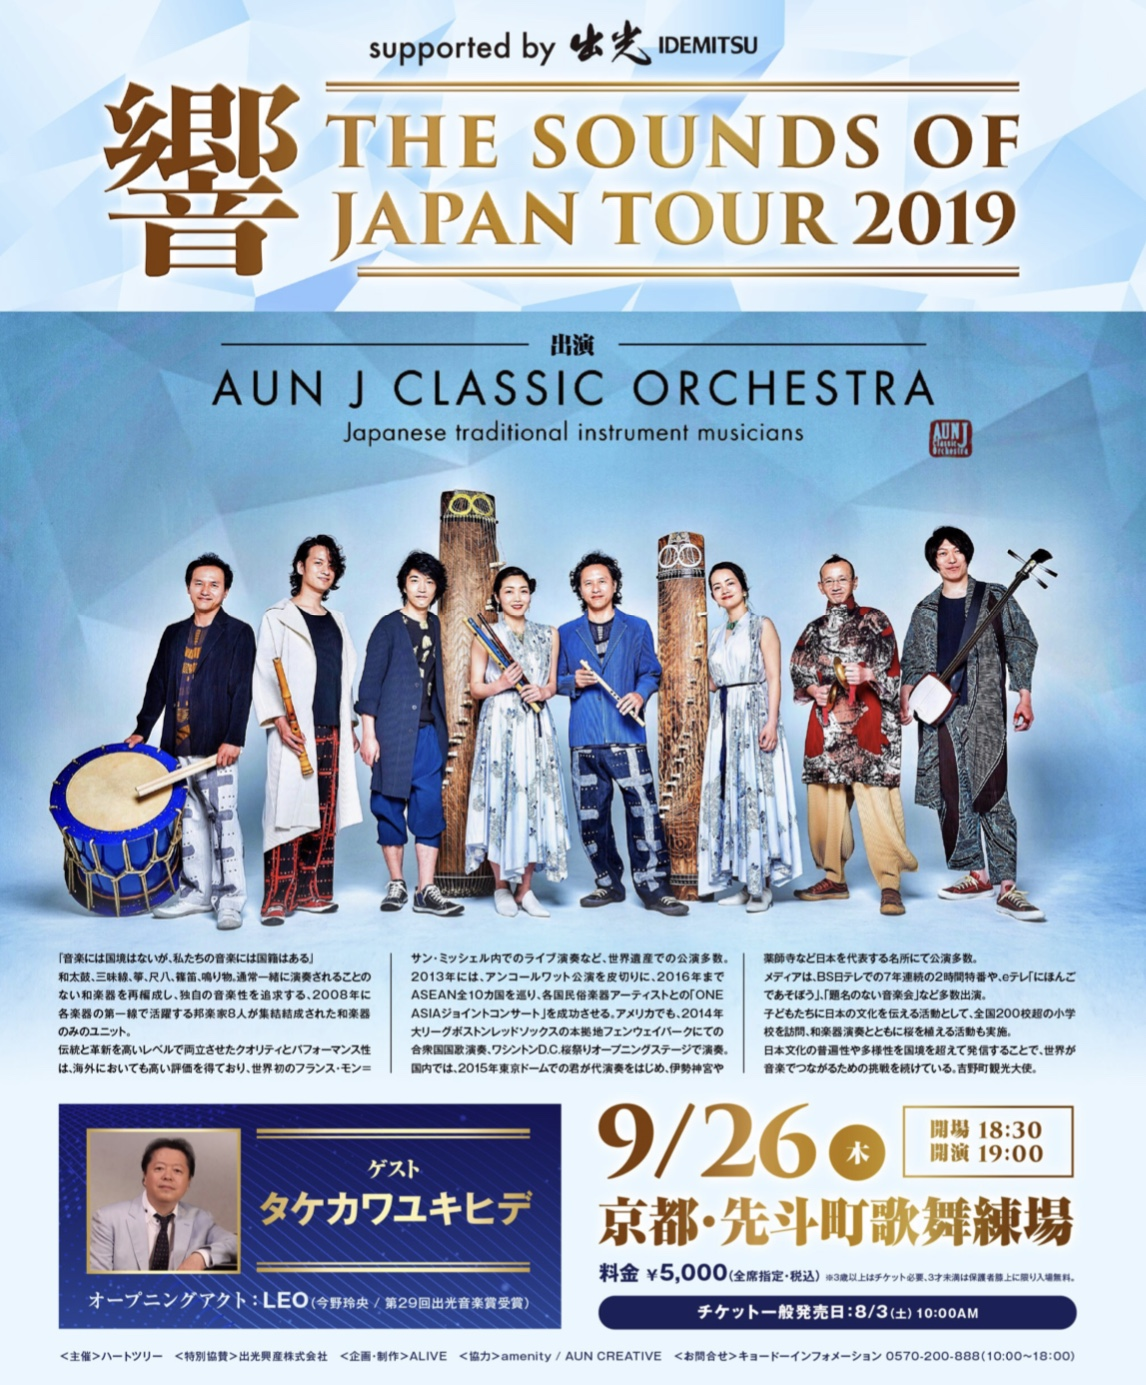 響 THE SOUNDS OF JAPAN TOUR 2019